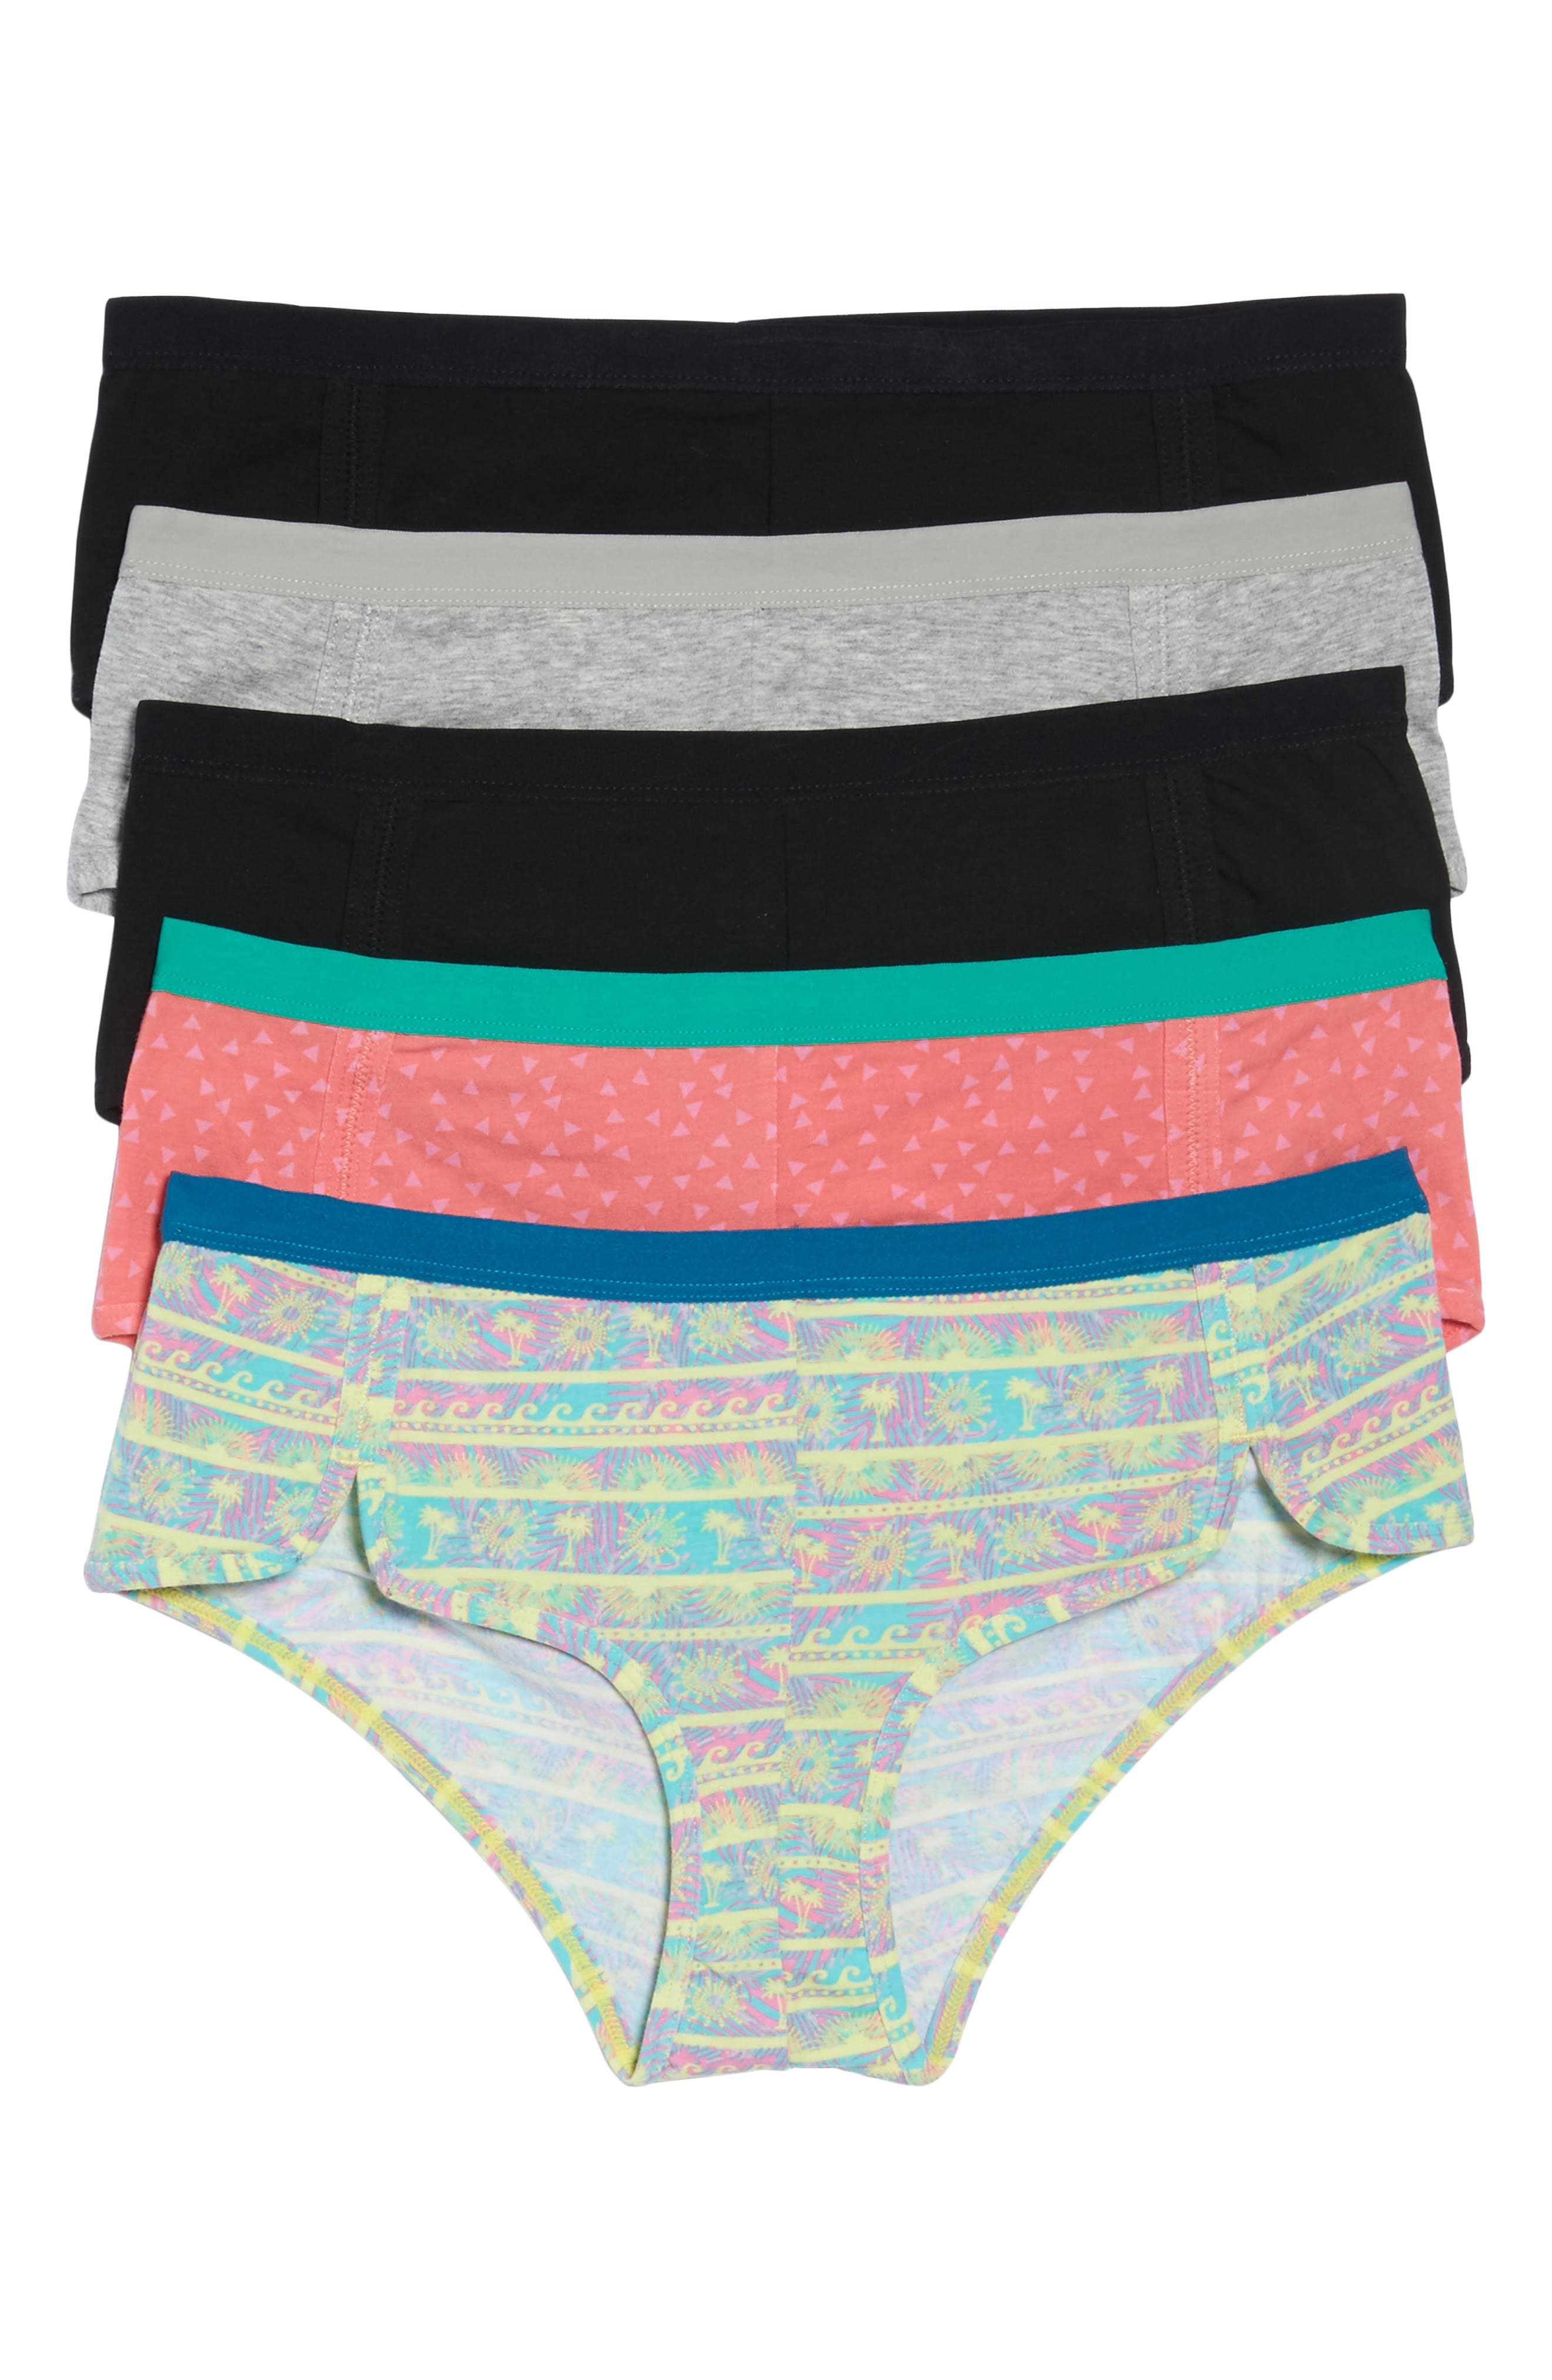 h.dew 5-Pack Stretch Cotton Girlshorts